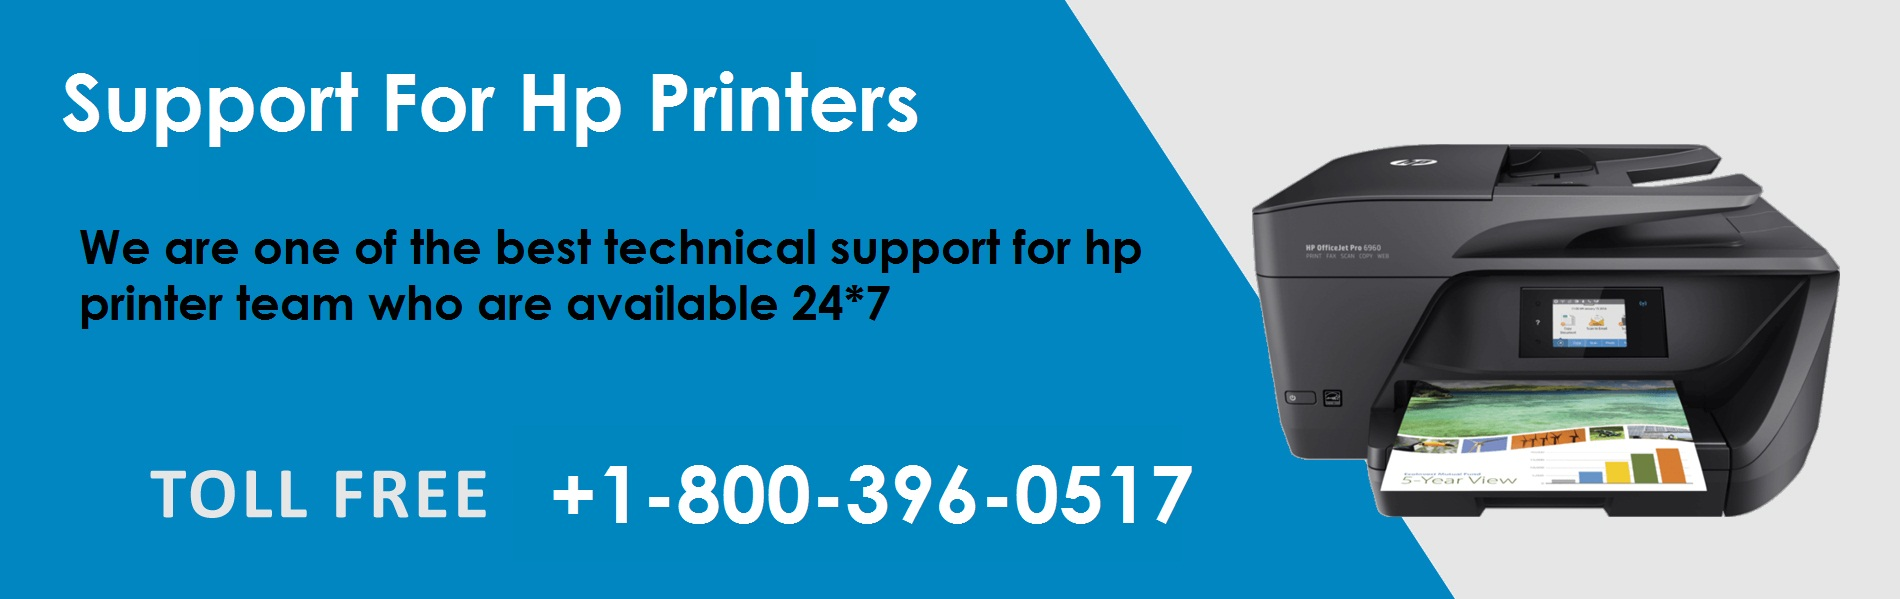 hp printers contact phone number.jpg